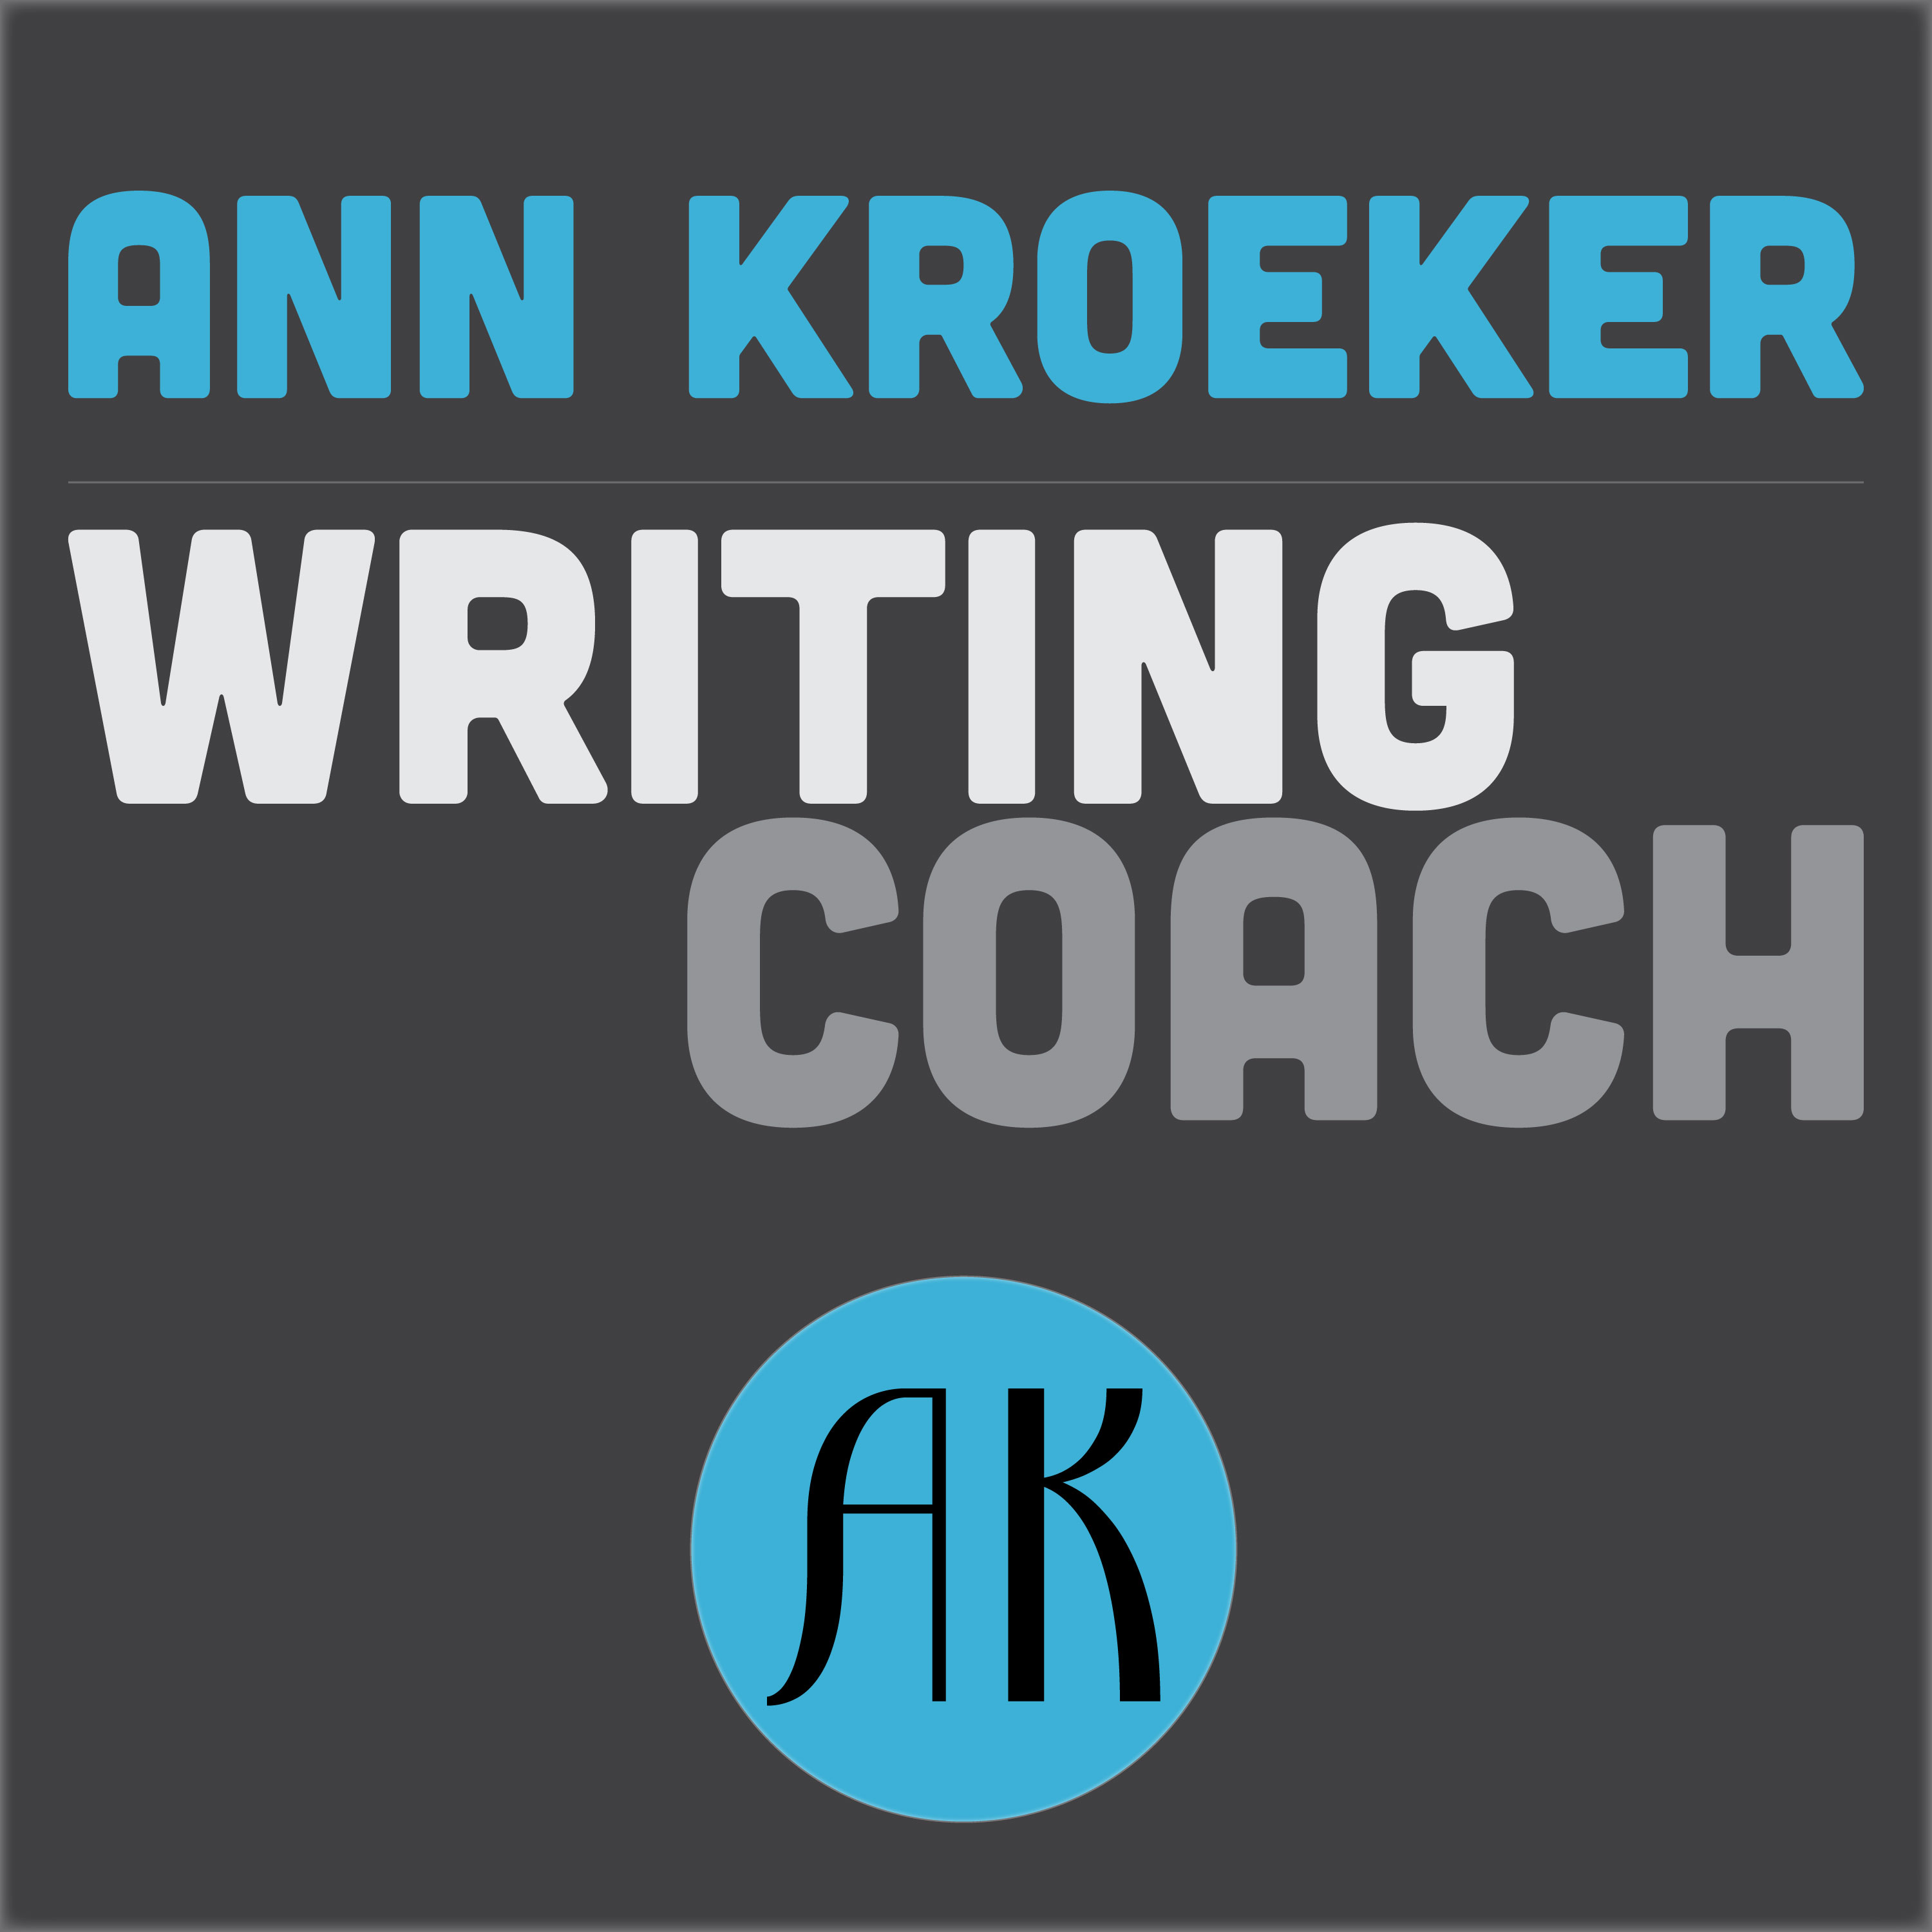 Ann Kroeker, Writing Coach